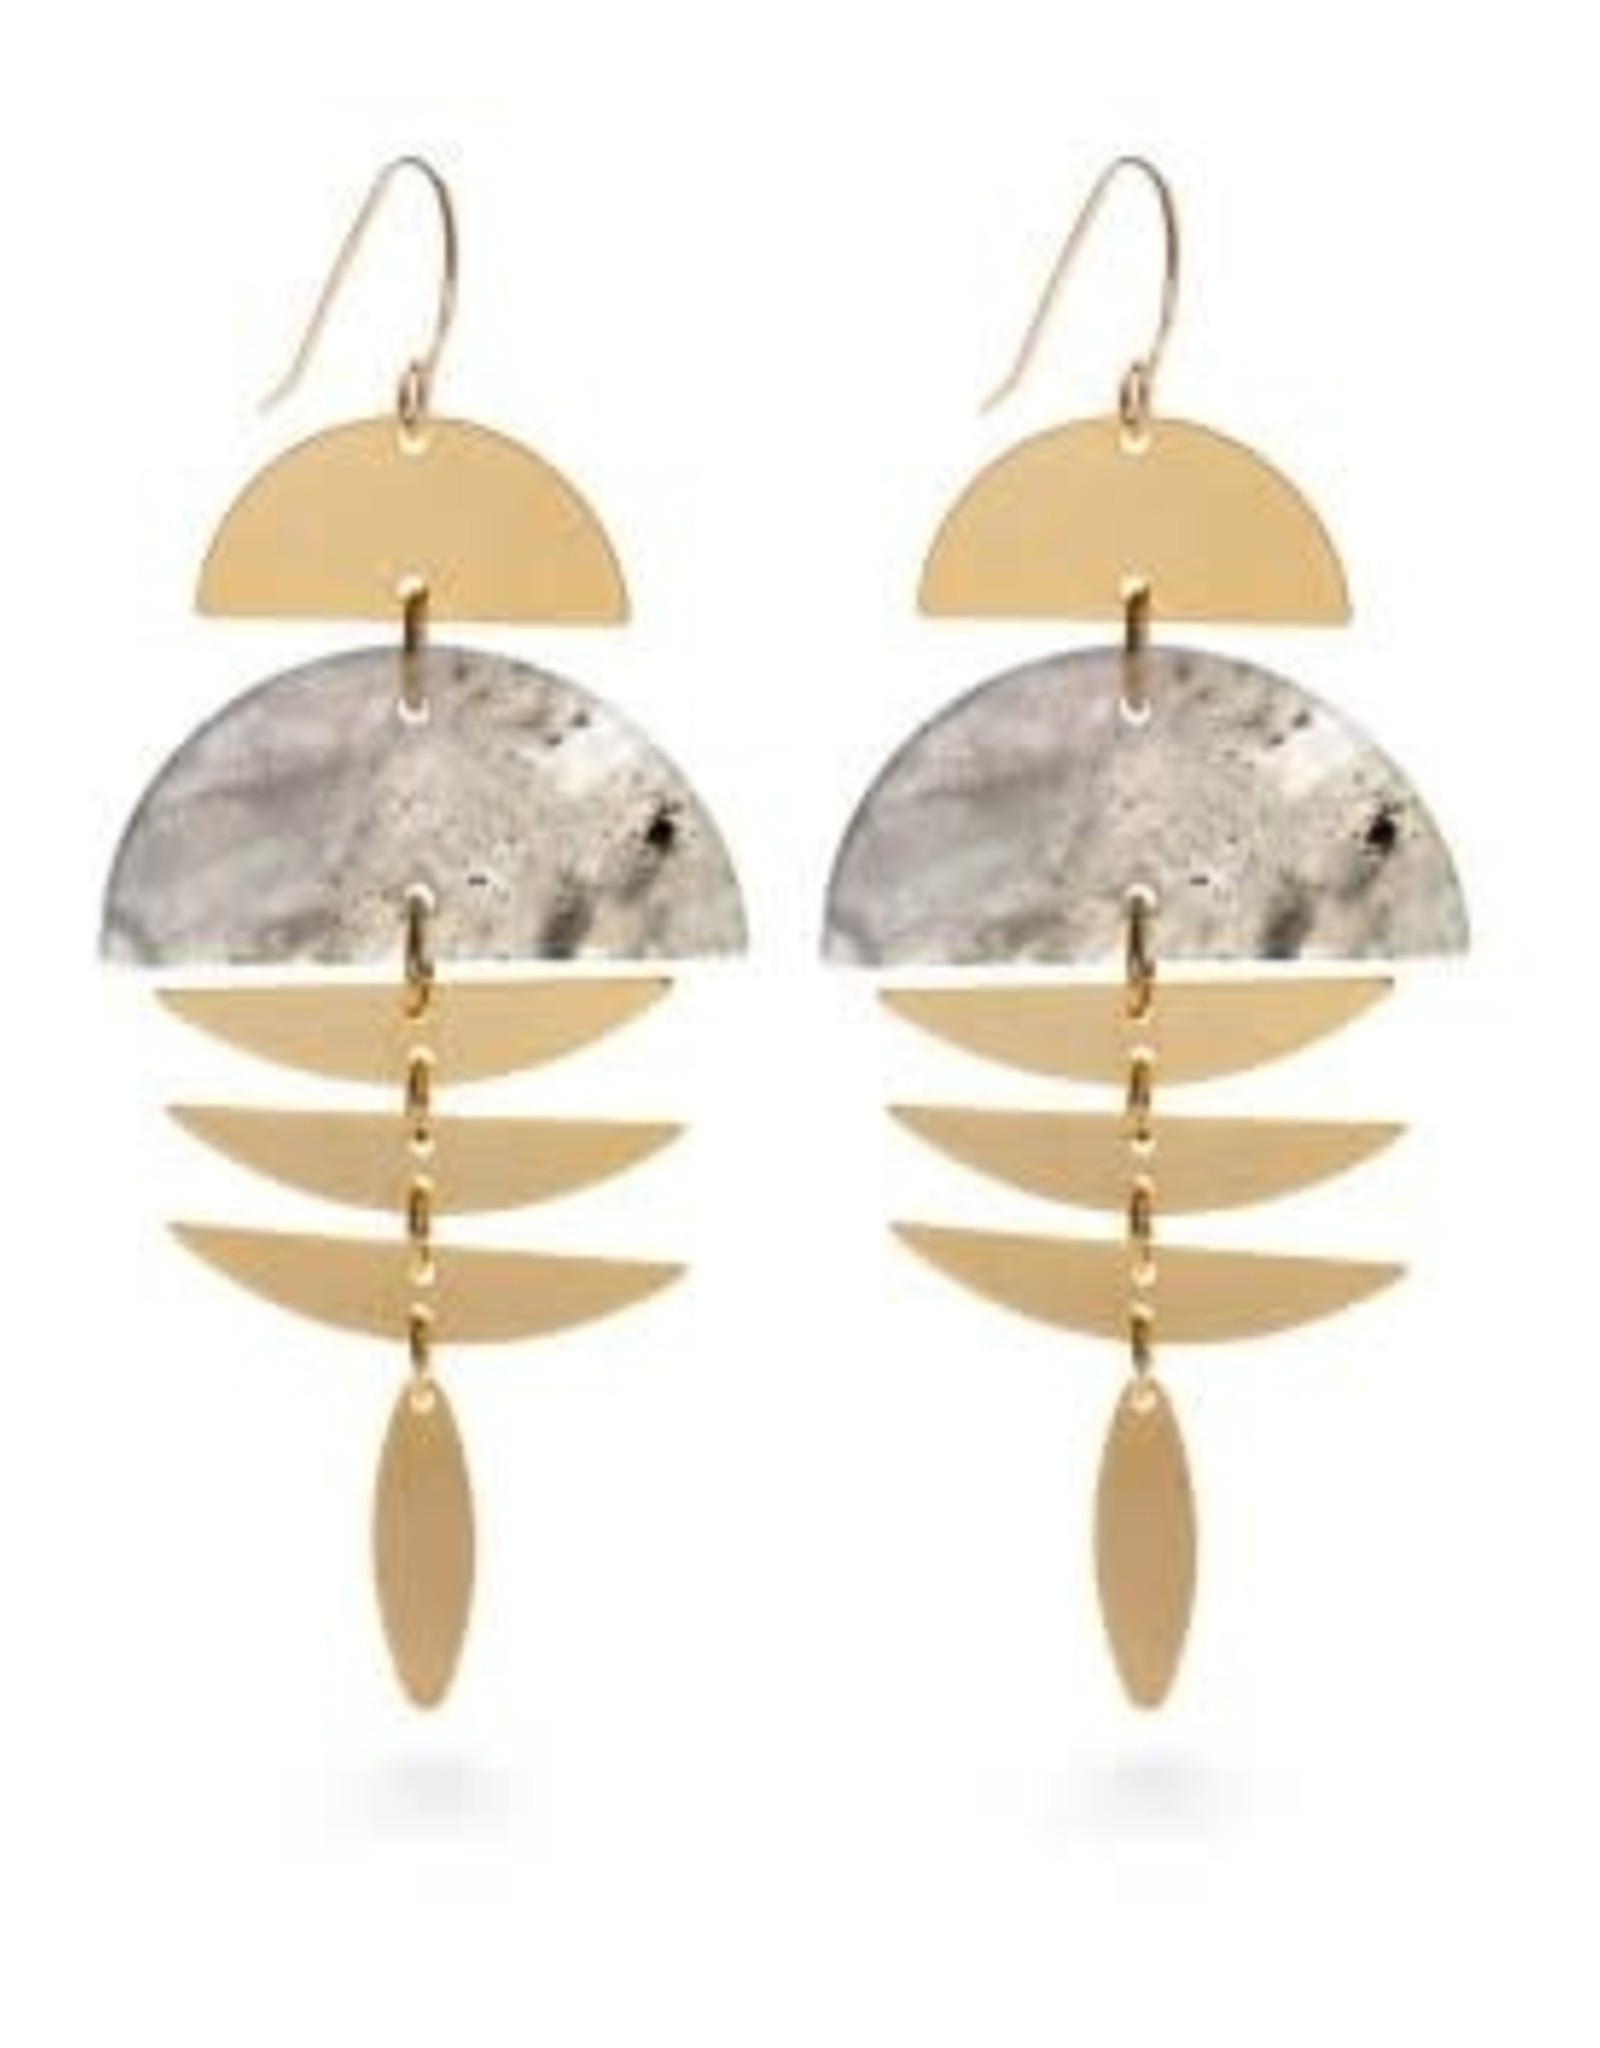 AMANO TRADING INC AMANO PISCES EARRINGS IN LABRODITE